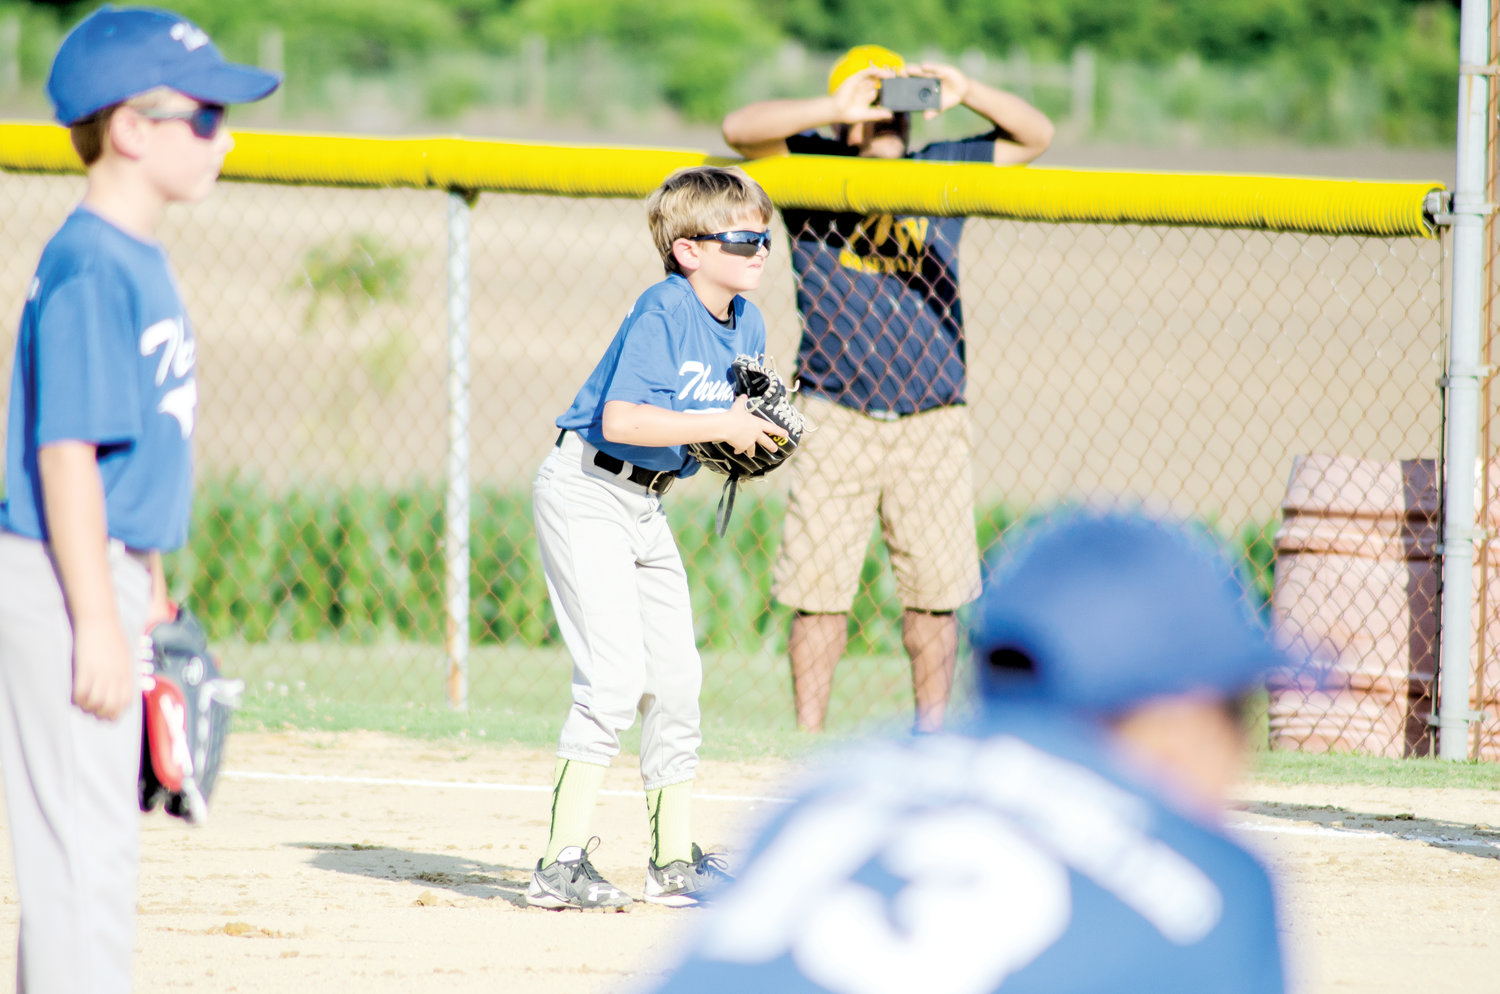 8U baseball teams shine at Daughtry Field.Holden Joyner gets ready on defense over at first base during the Mount Olive Thunder team's game against Eastern Wayne on Tuesday, June 11.